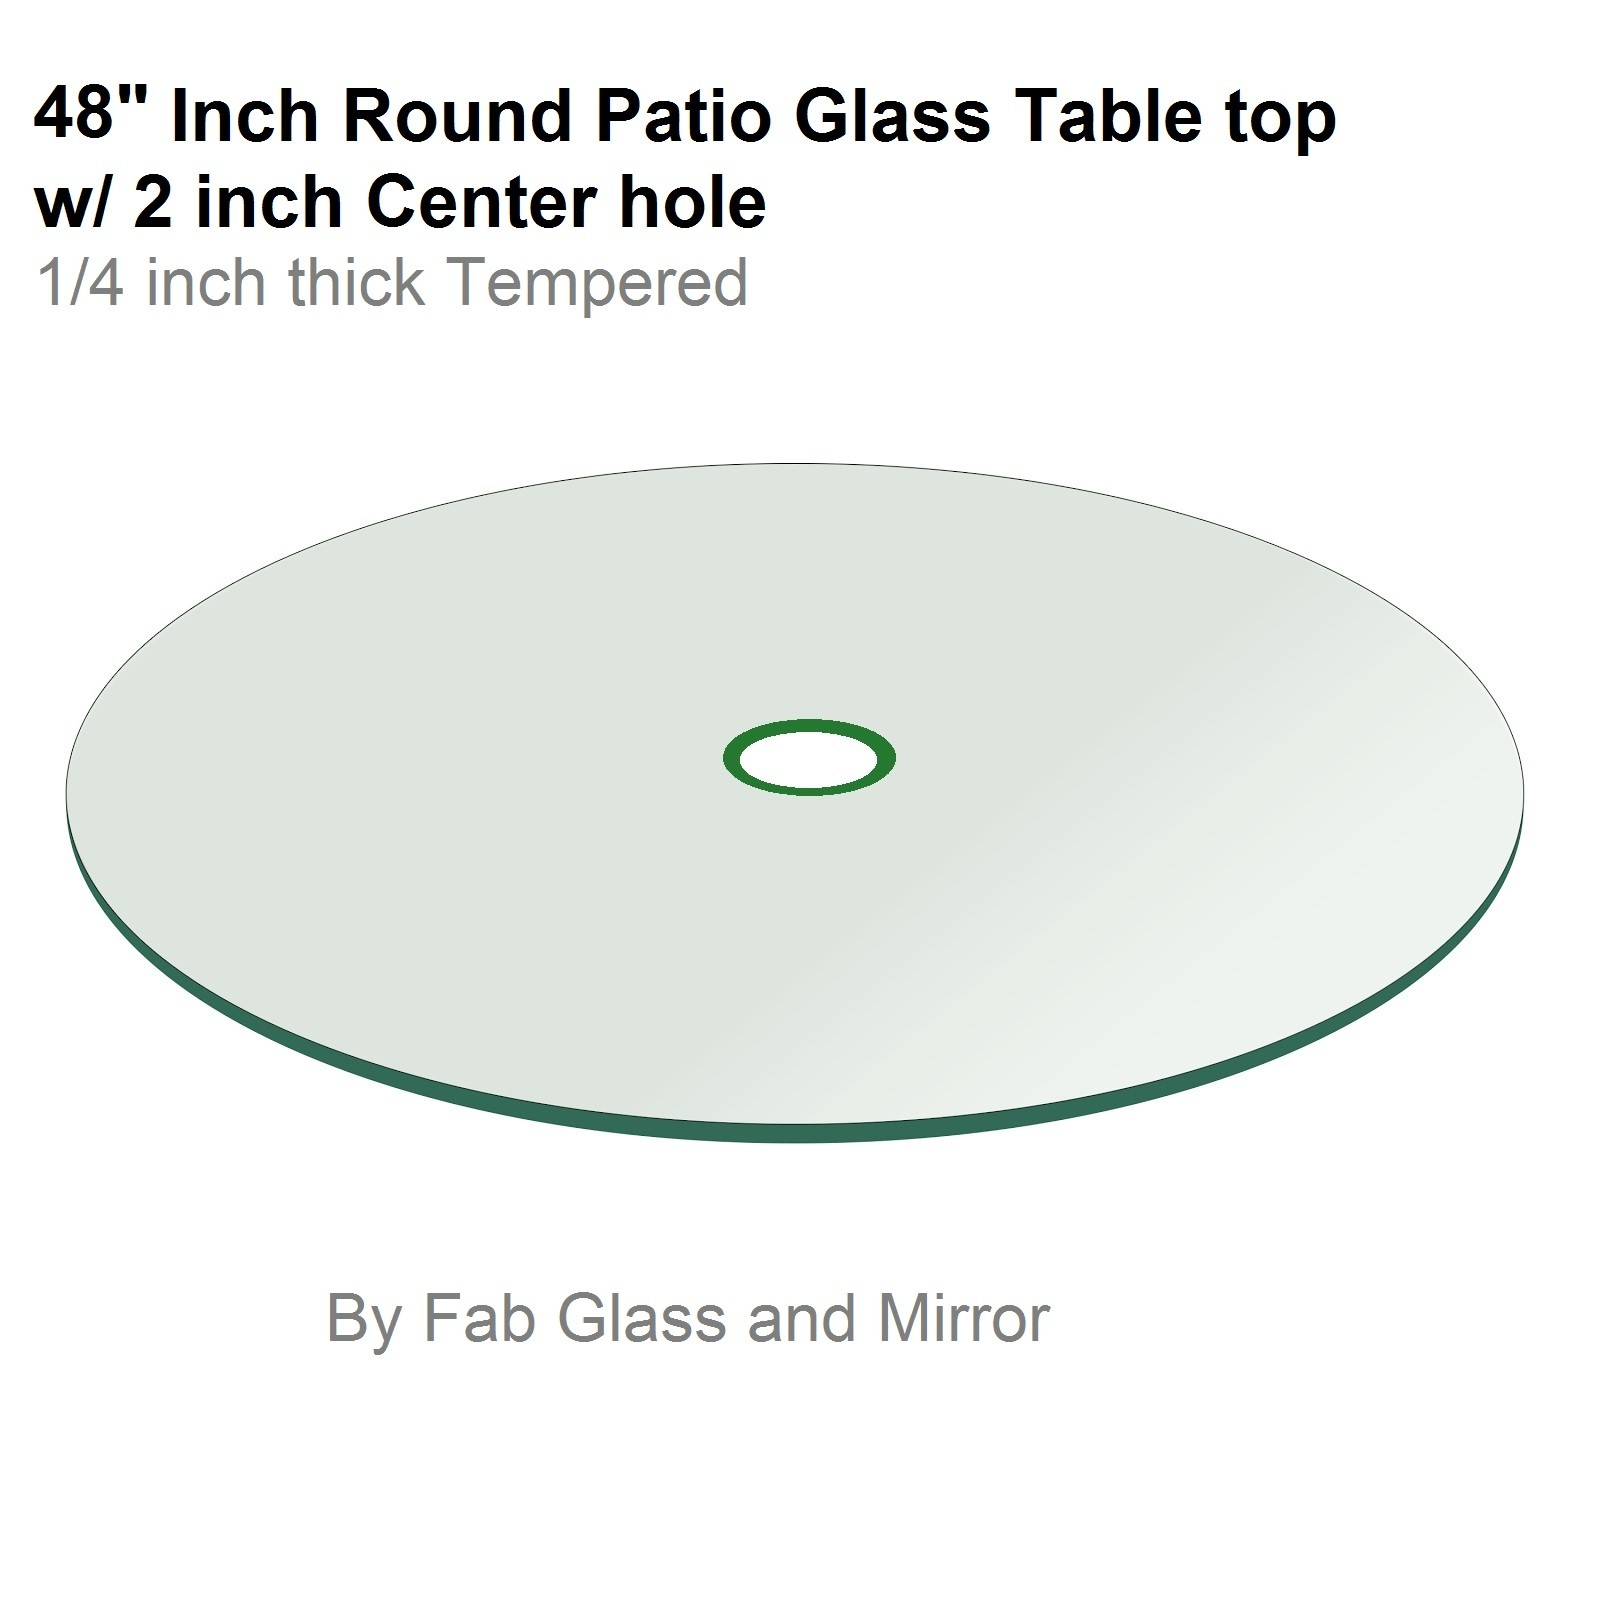 Replacement Glass Tables Tops At Most Affordable Prices